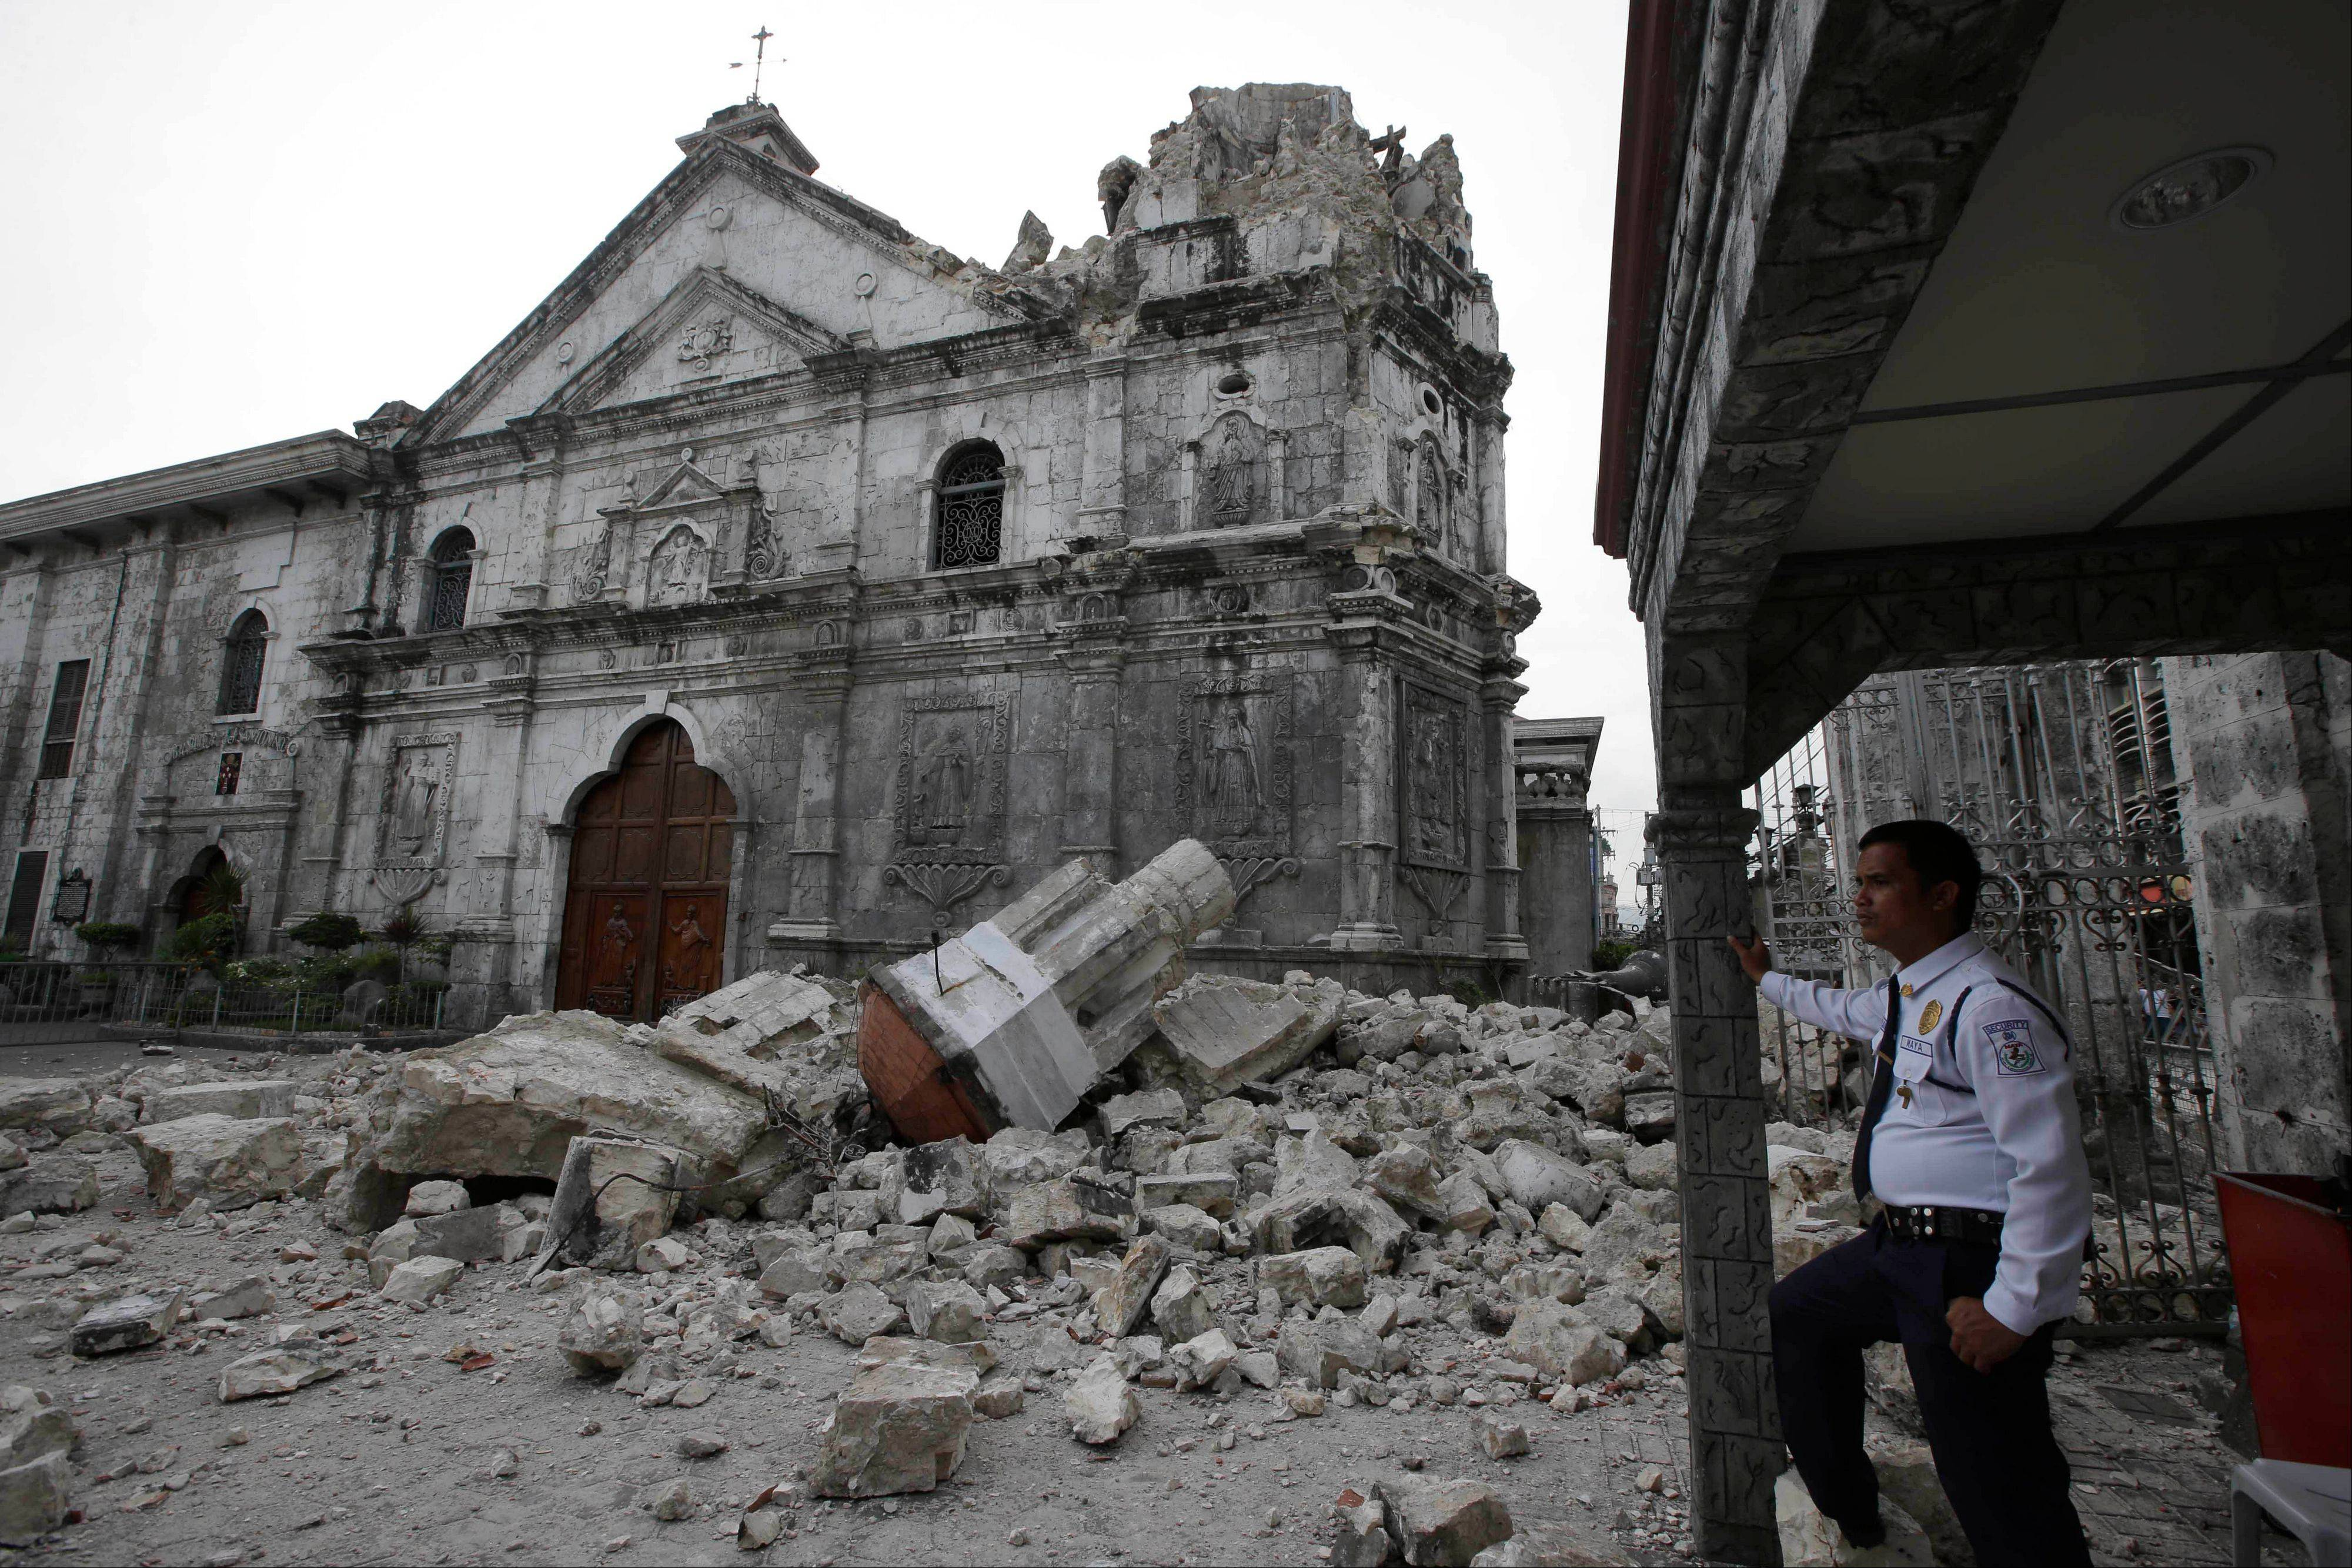 A private guard stands near the damaged Basilica of the Holy Child following a 7.2-magnitude earthquake that hit Cebu city in central Philippines and toppled the bell tower of the Philippines� oldest church Tuesday, Oct. 15, 2013. The tremor collapsed buildings, cracked roads and toppled the bell tower of the church Tuesday morning, causing multiple deaths across the central region and sending terrified residents into deadly stampedes.